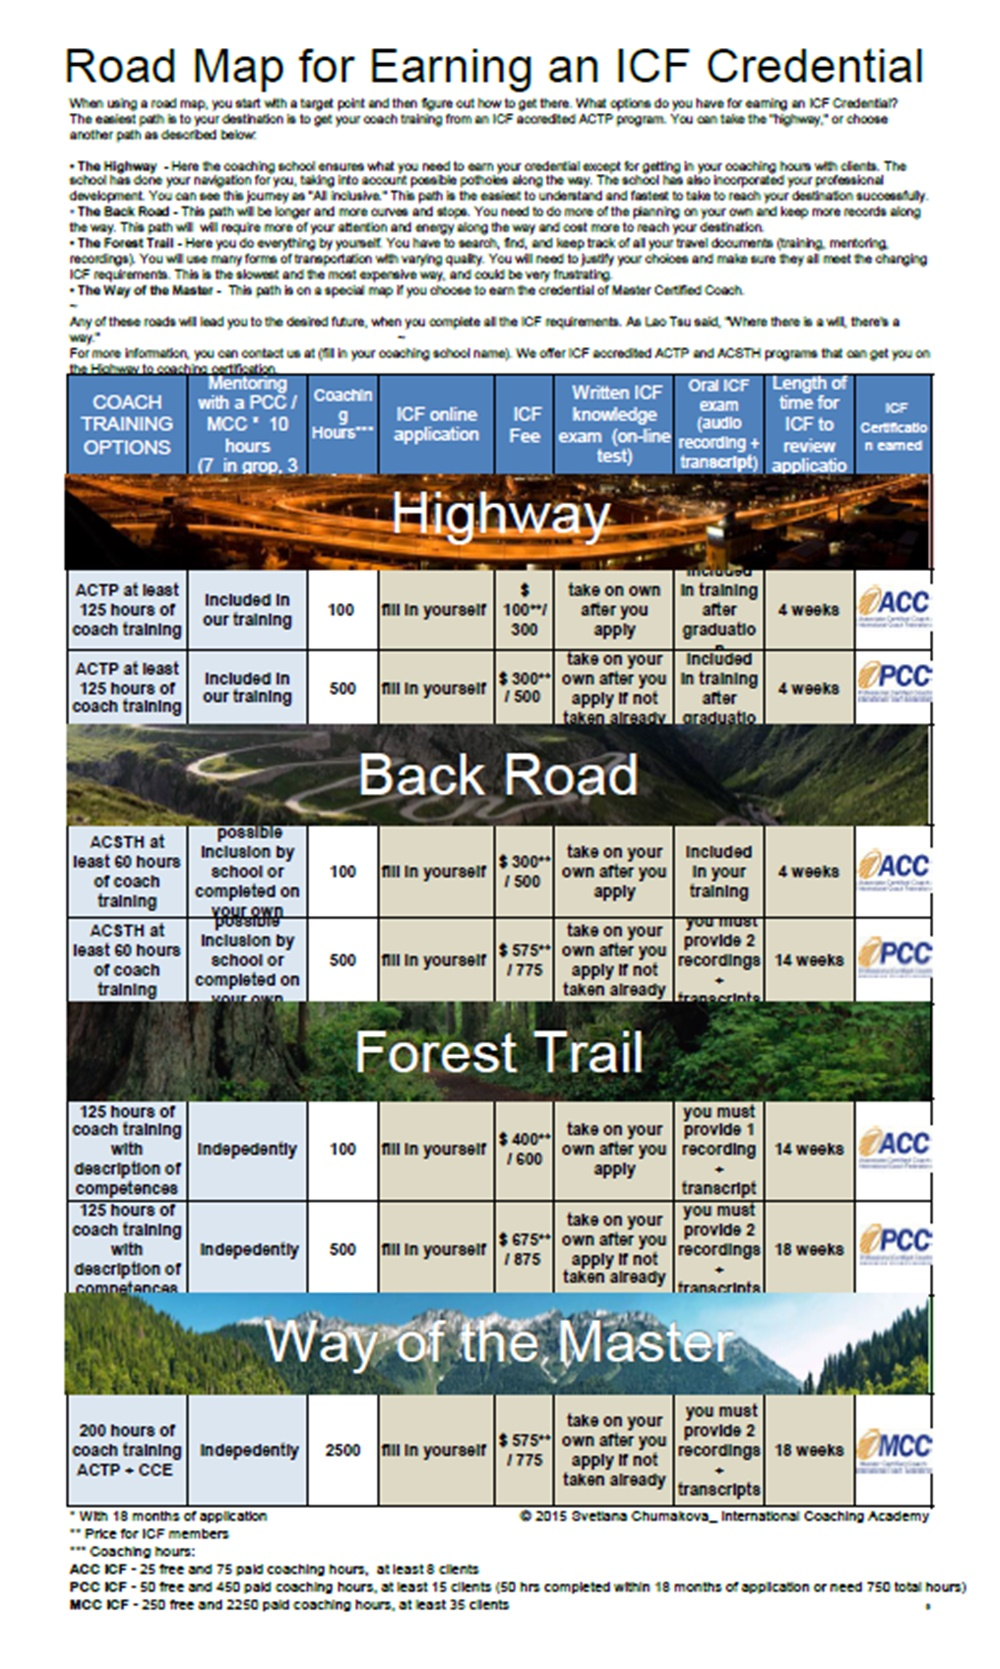 Road Map for Earning an ICF Credential